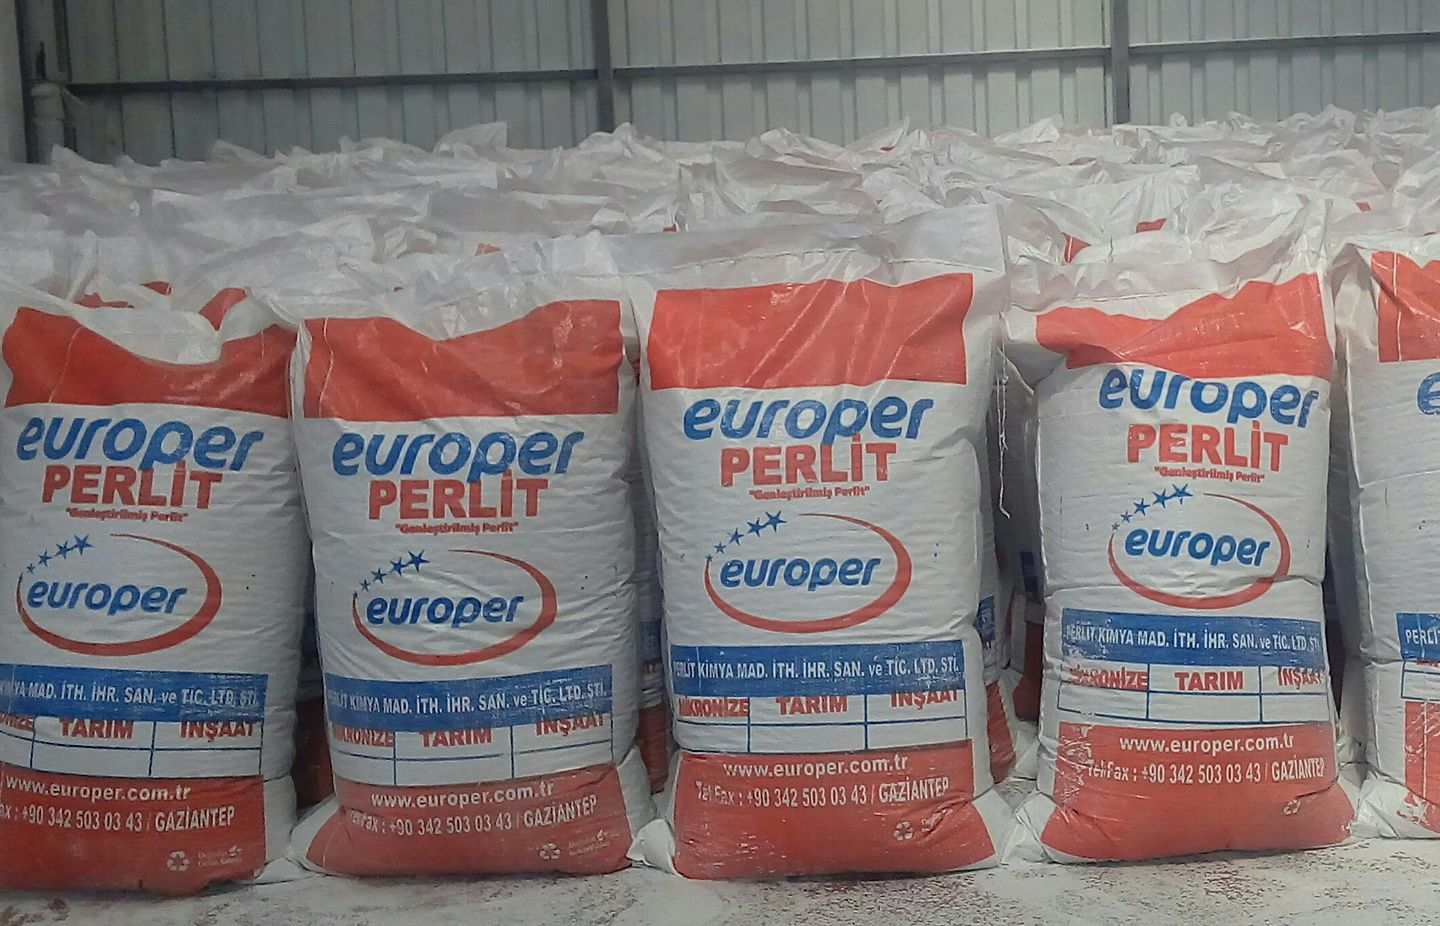 Expanded & Non-expanded perlite